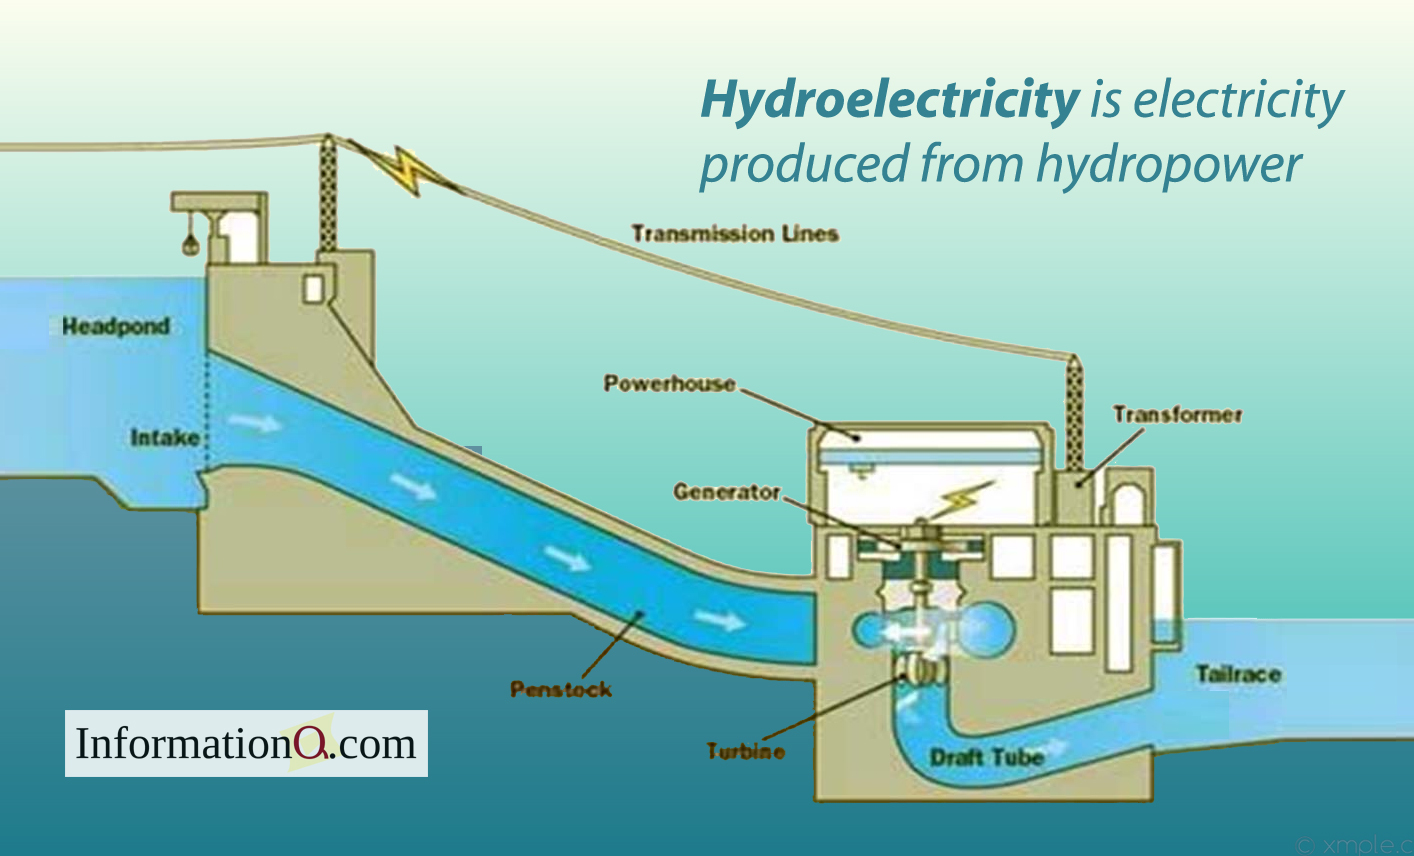 Hydroelectricity is electricity produced from hydropower.